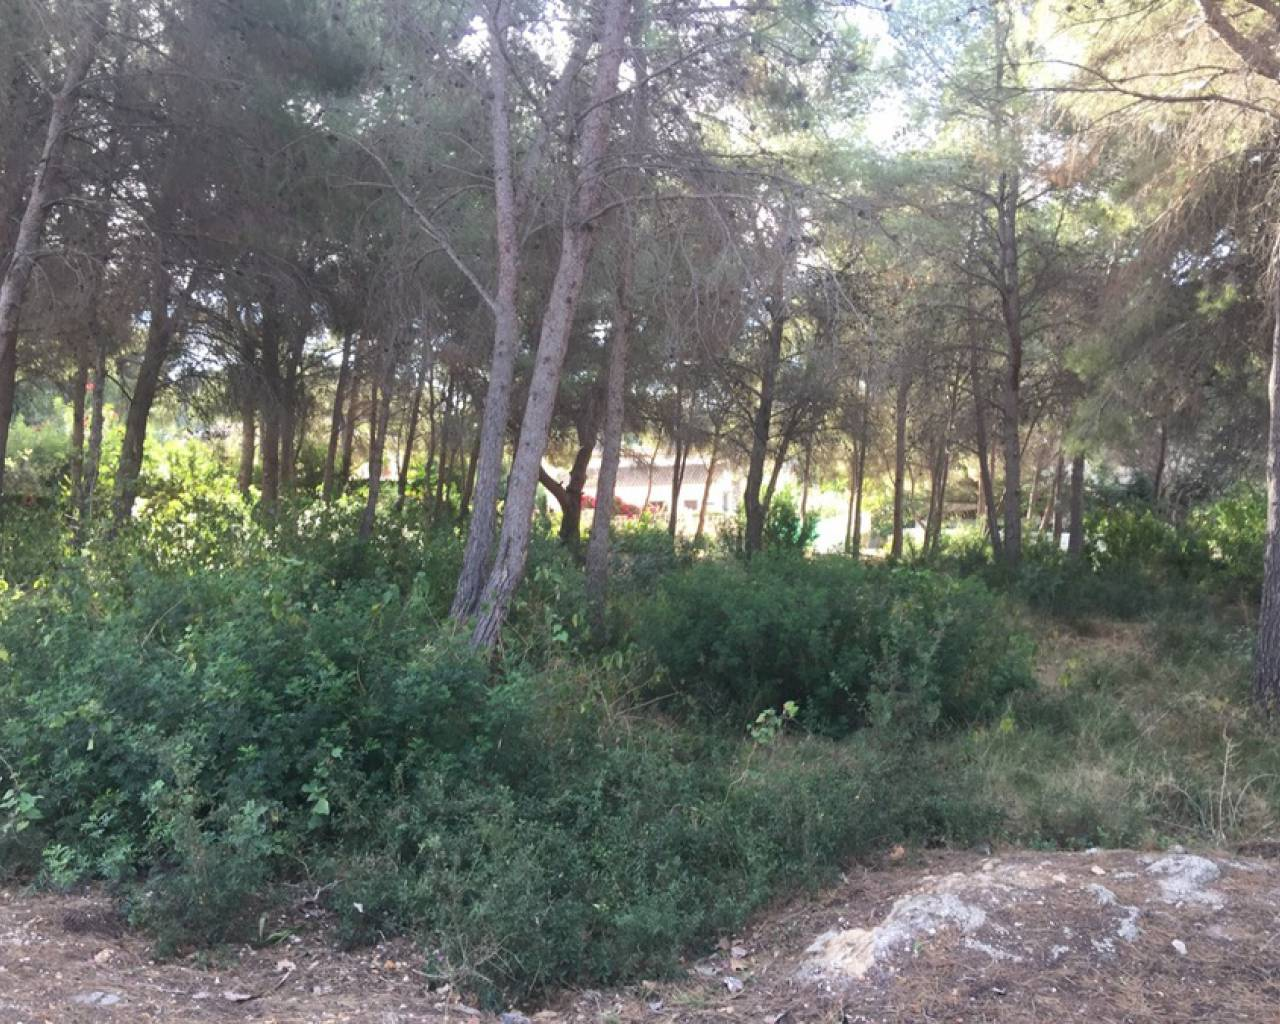 Sale - Plot of Land - Moraira - Pla de Mar